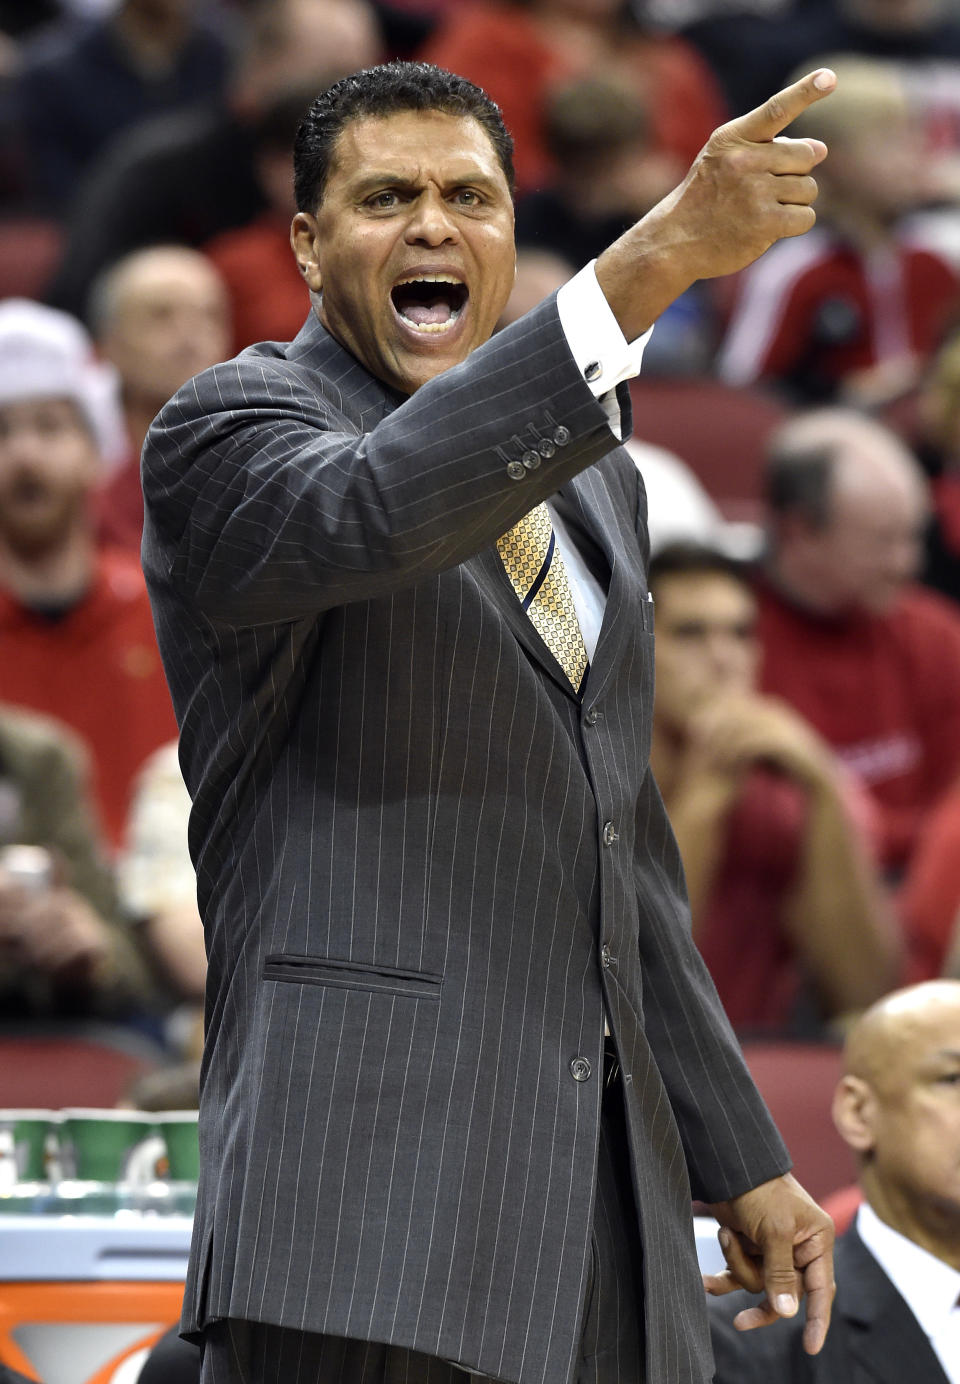 Cal State Northridge coach Reggie Theus shouts instructions to his team during the first half of an NCAA college basketball game against Louisville, Tuesday Dec. 23, 2014, in Louisville, Ky. (AP Photo/Timothy D. Easley)